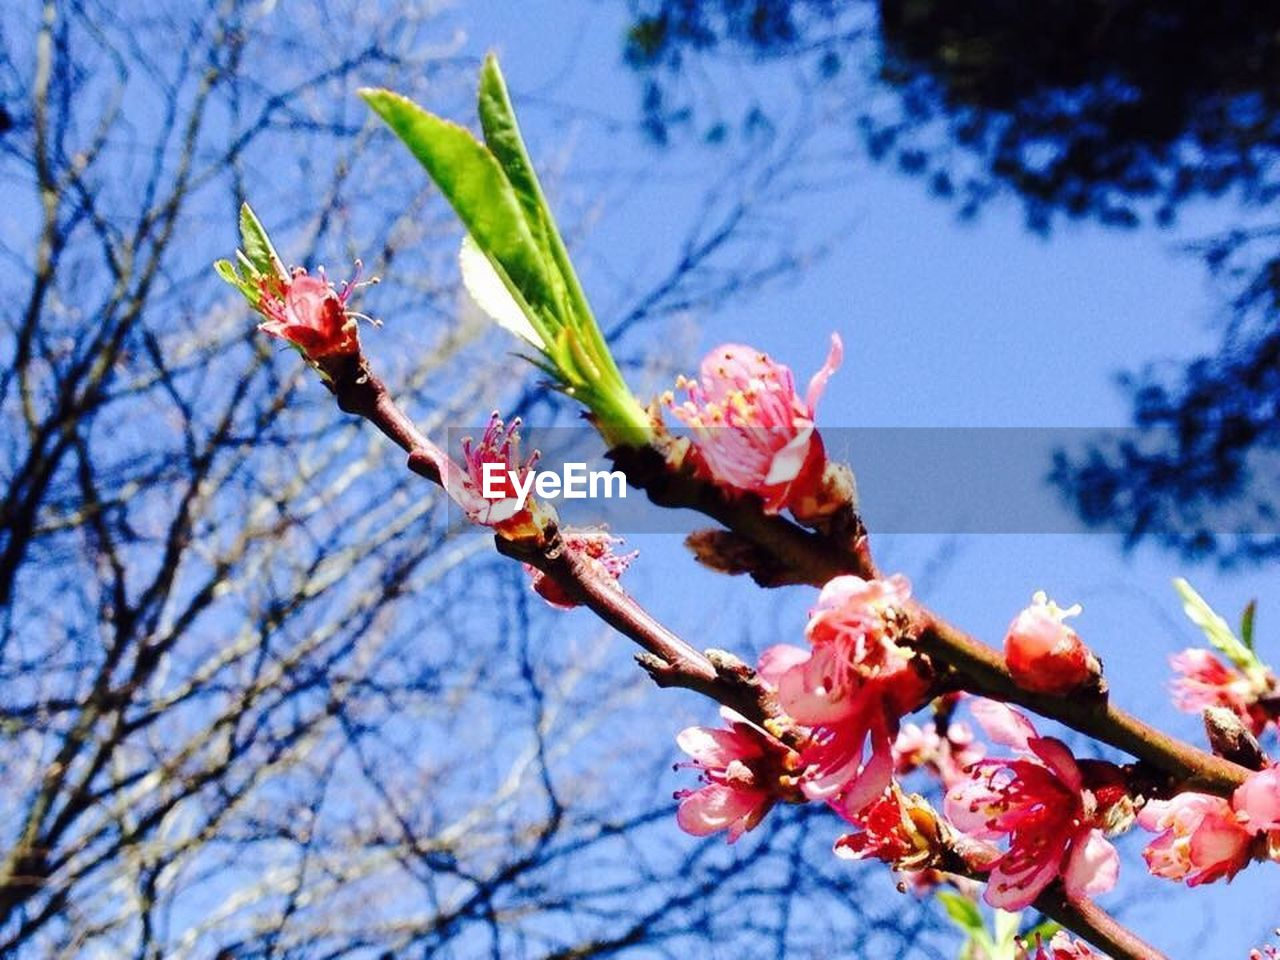 flower, growth, beauty in nature, nature, low angle view, fragility, freshness, tree, branch, no people, day, outdoors, plant, petal, springtime, close-up, flower head, blooming, sky